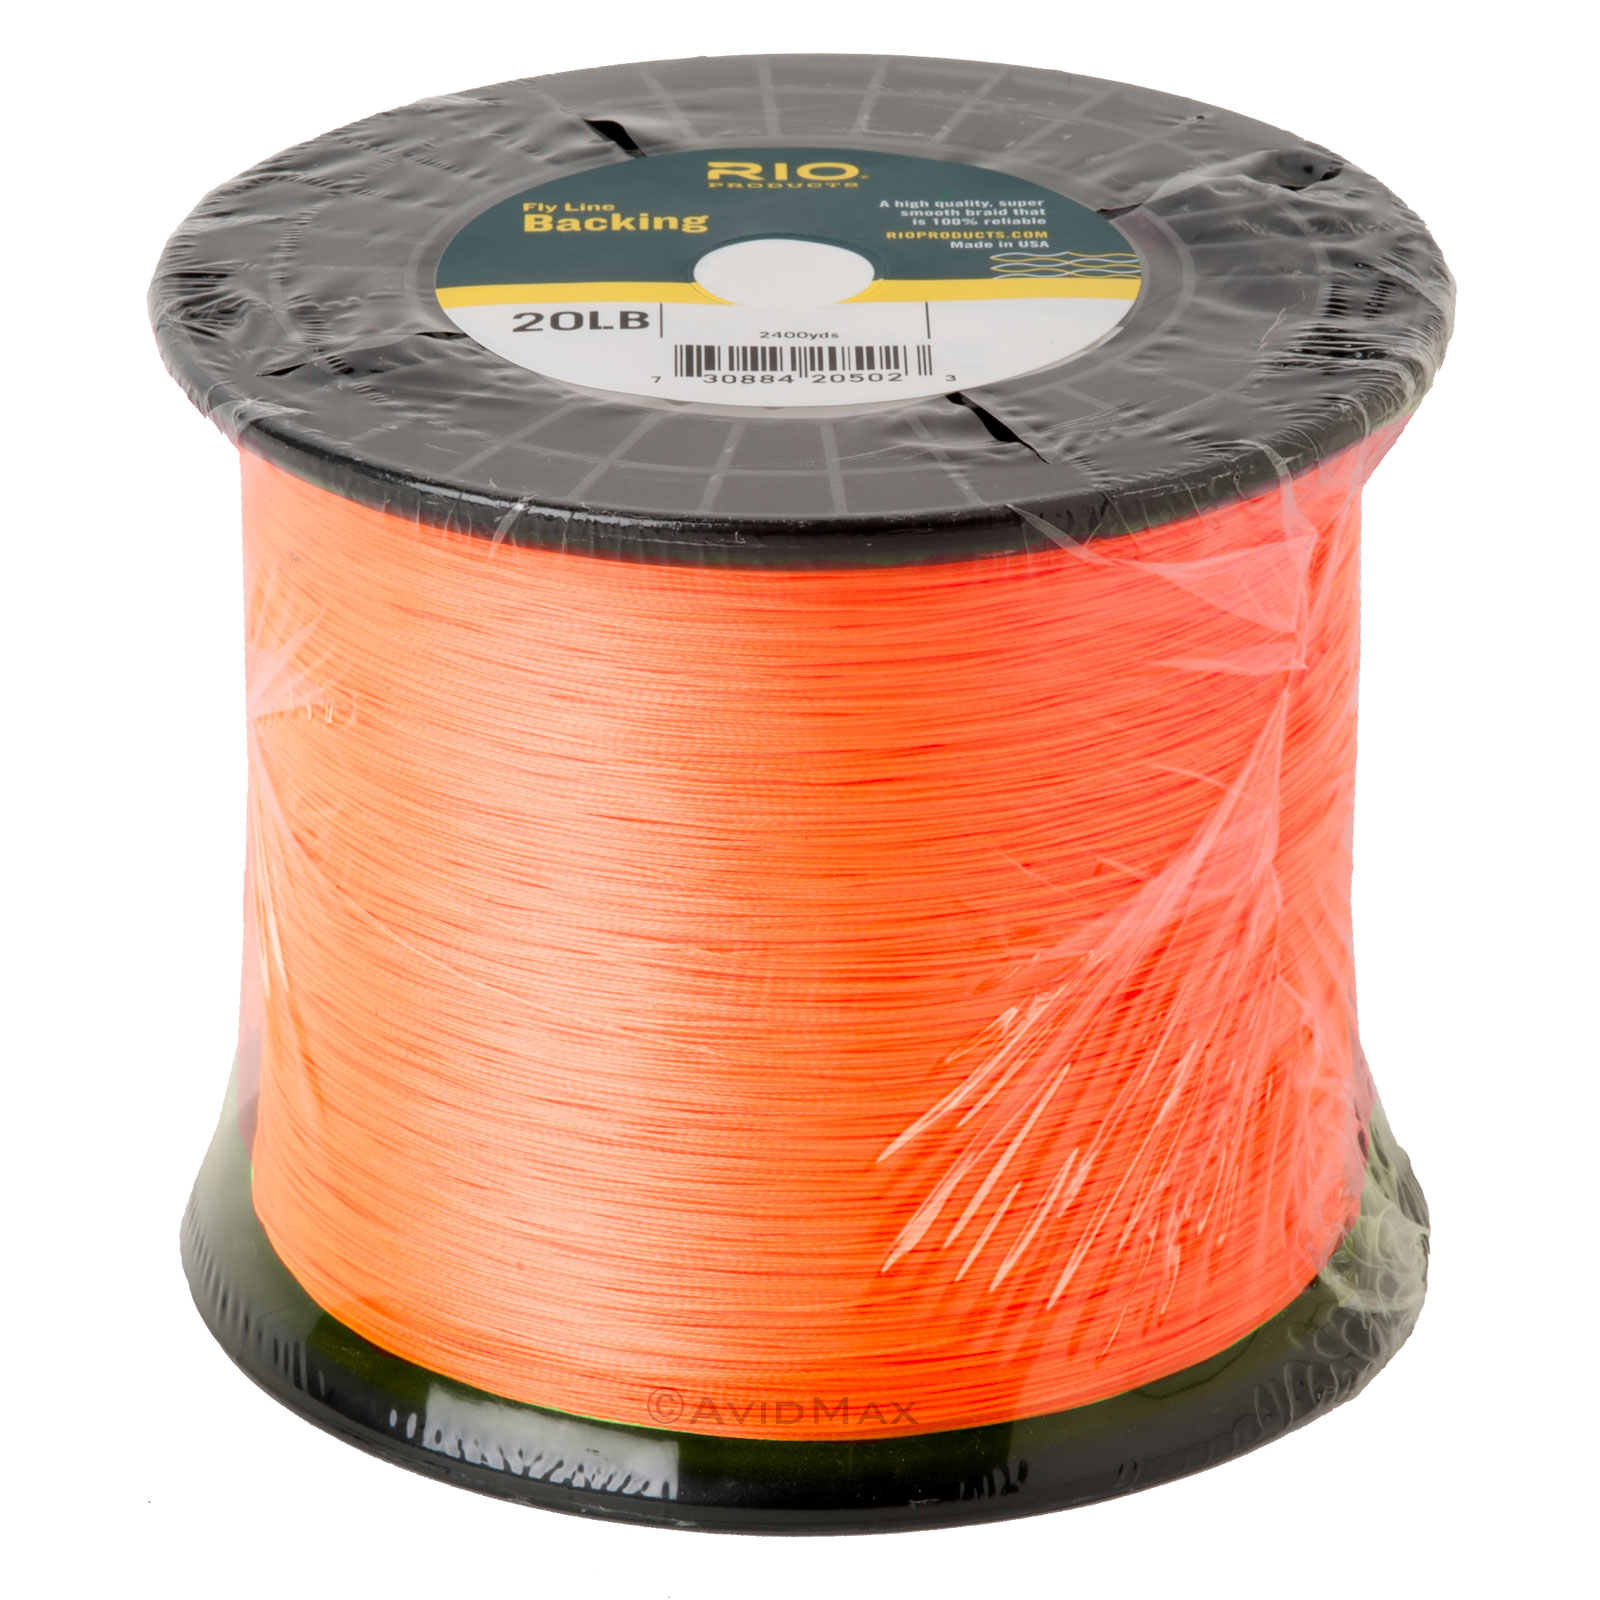 Rio dacron fly line backing 20 or 30 lb 100 to 5000 yd for Dacron fishing line